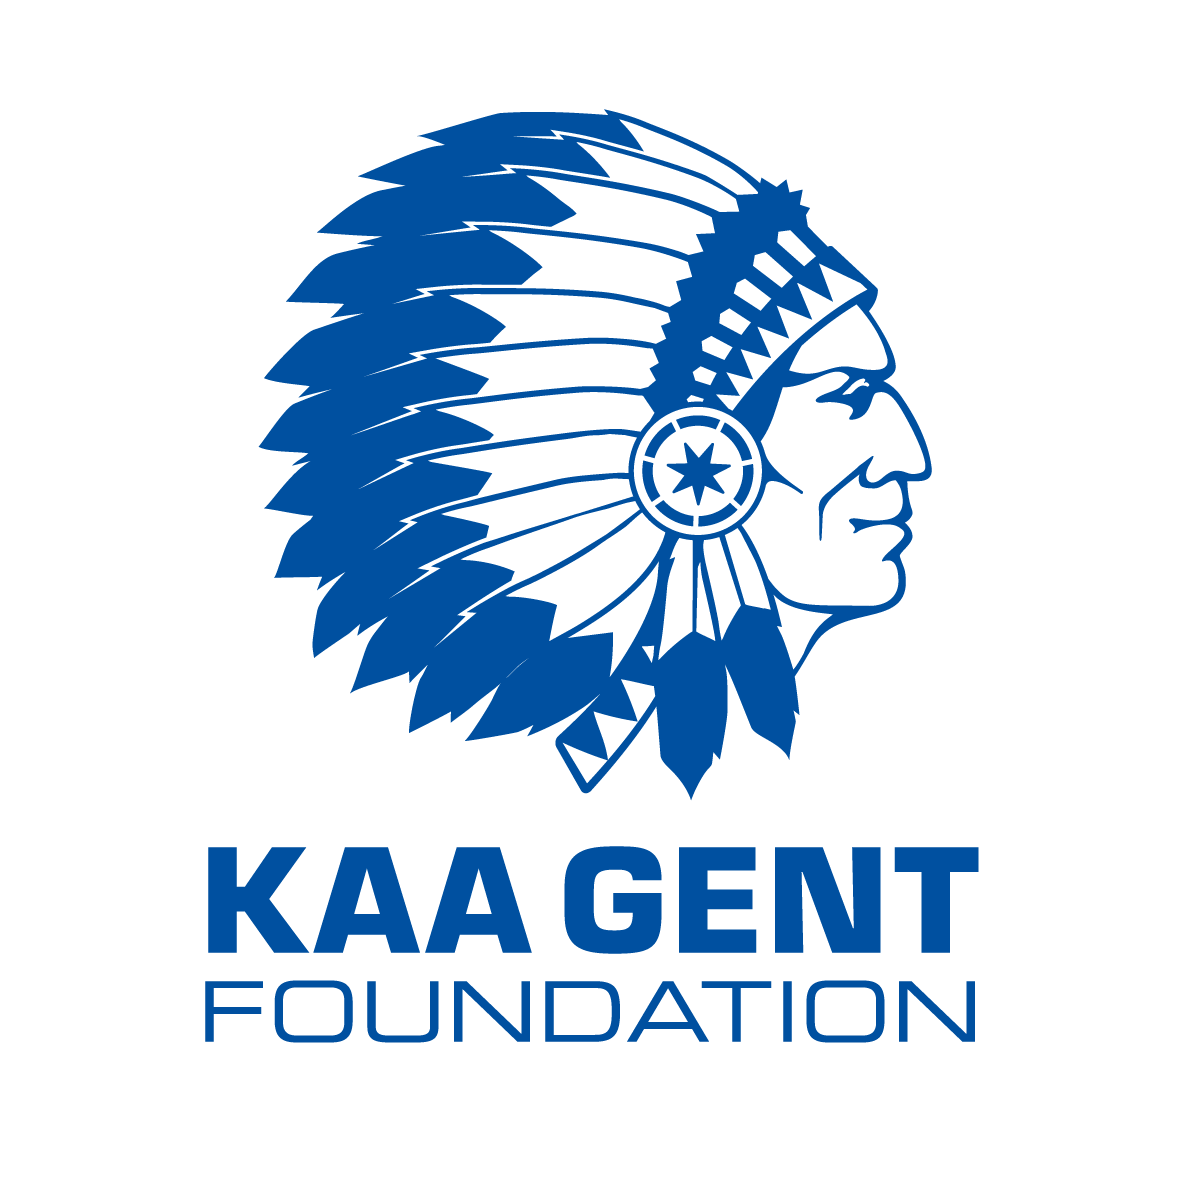 KAAGent_Foundation_L